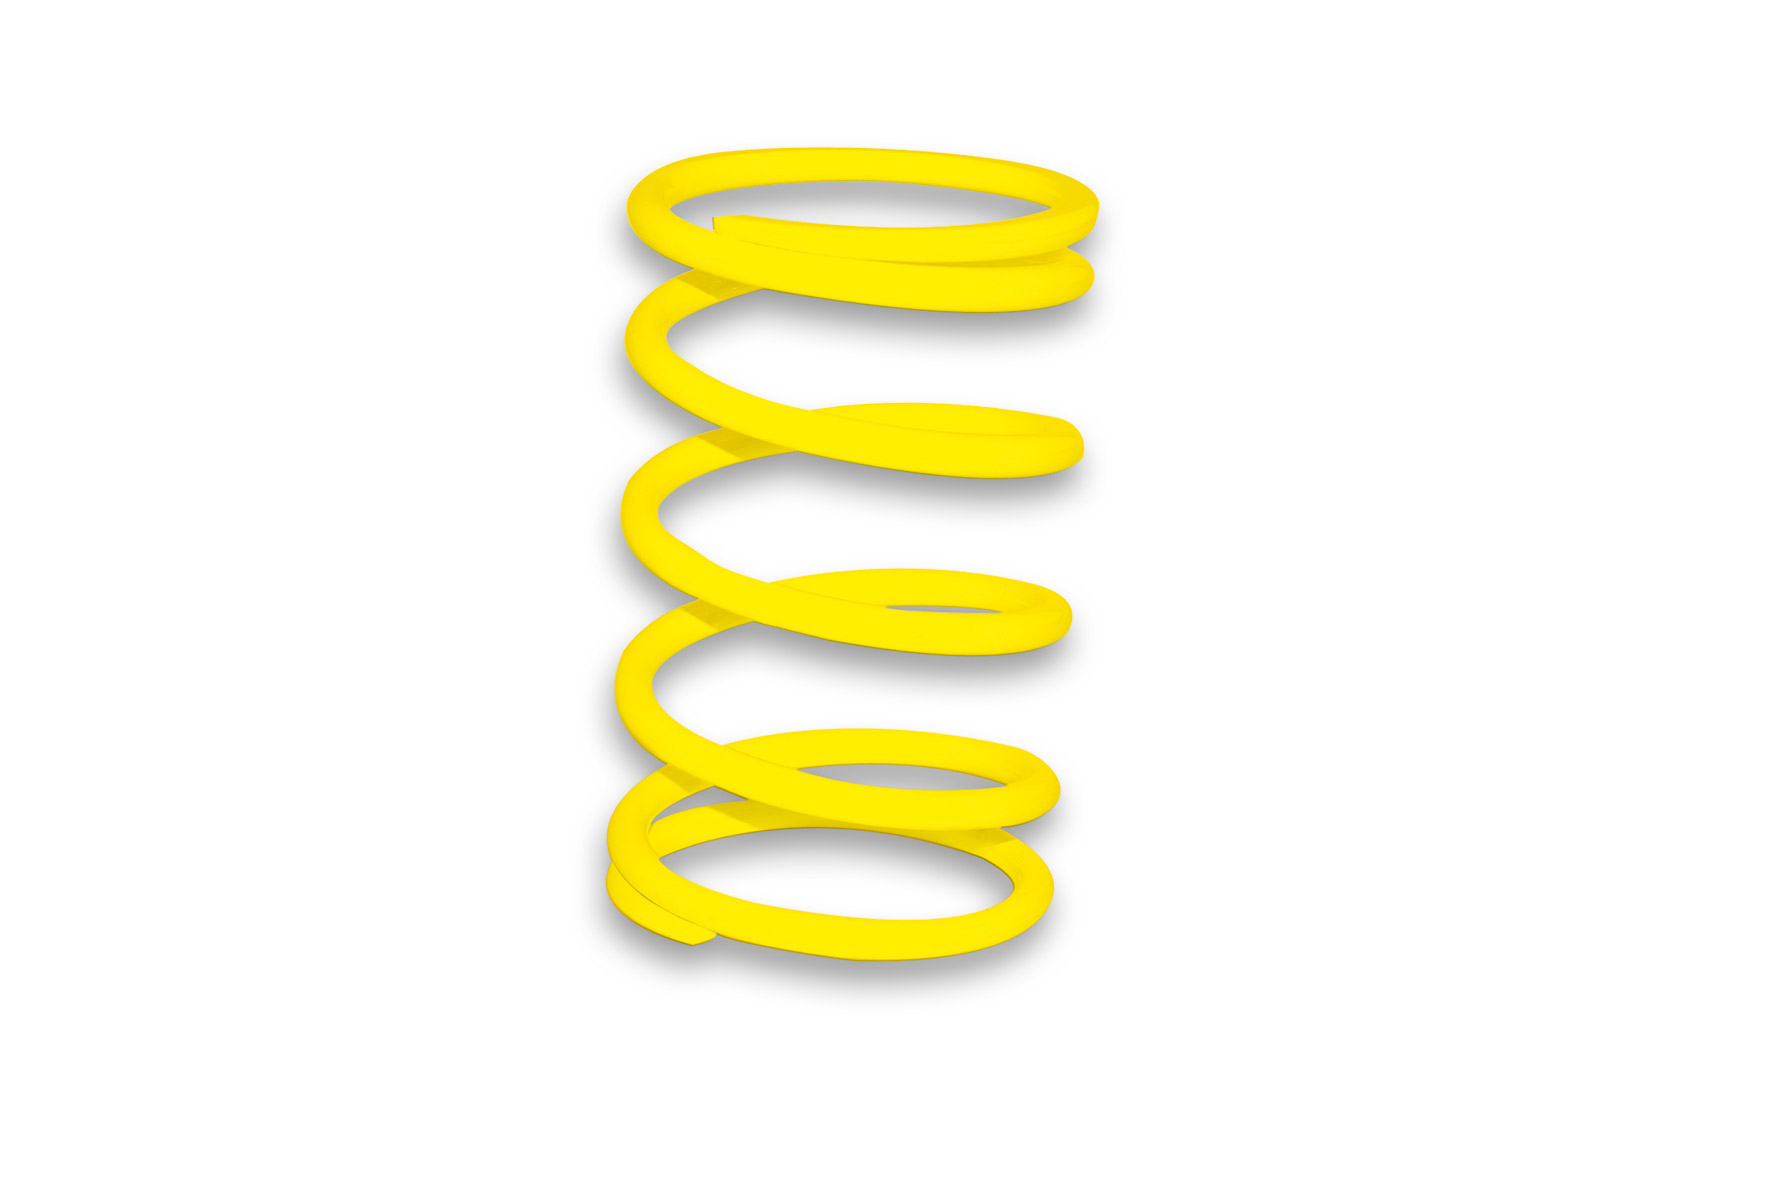 YELLOW VARIATOR ADJUSTER SPRING ext.Ø 57,8x90mm thread Ø 4,1mm 6,1k